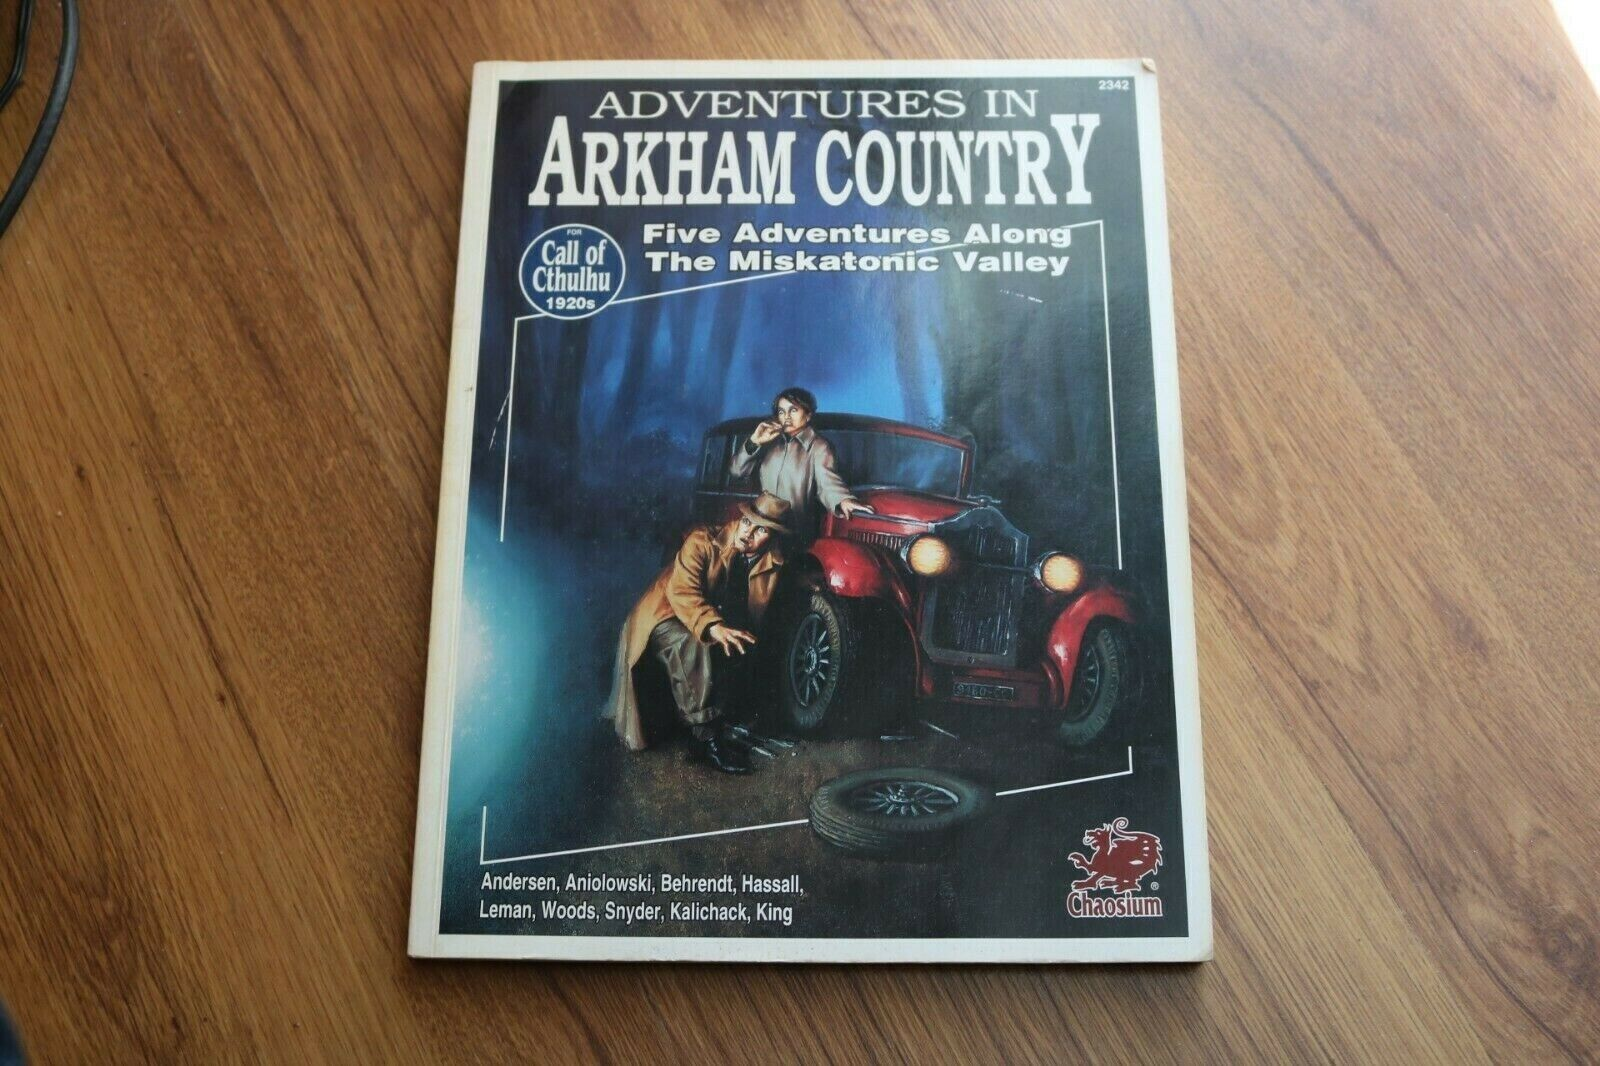 Adventures Arkham Country rpg book Call Cthulhu Chaosium 2342 1993 oop